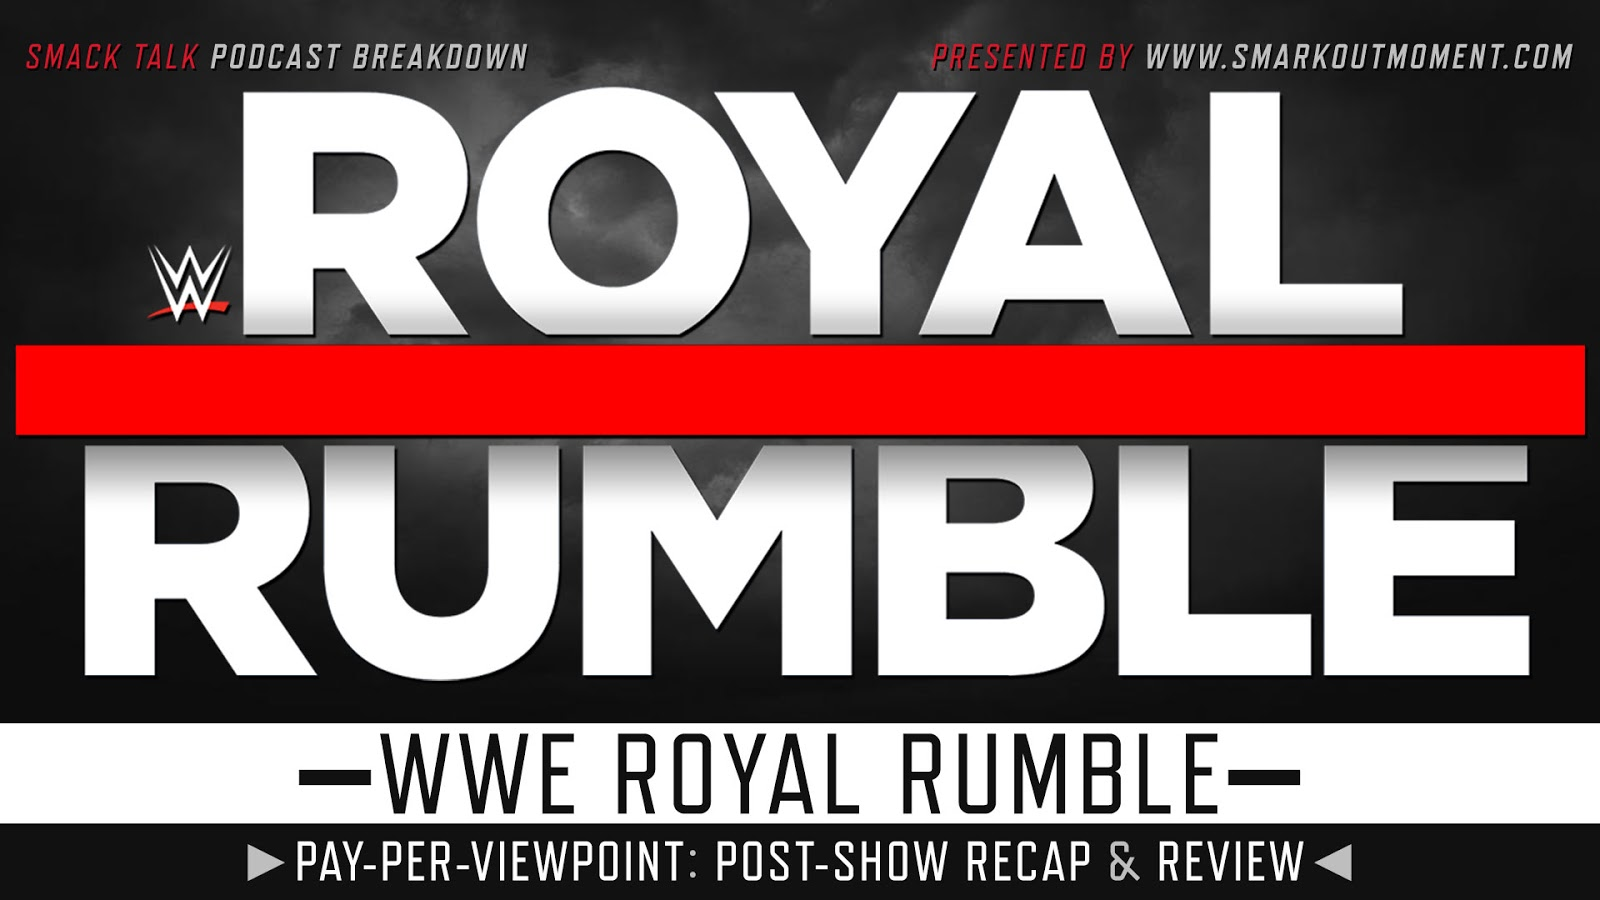 WWE Royal Rumble 2019 Recap and Review Podcast